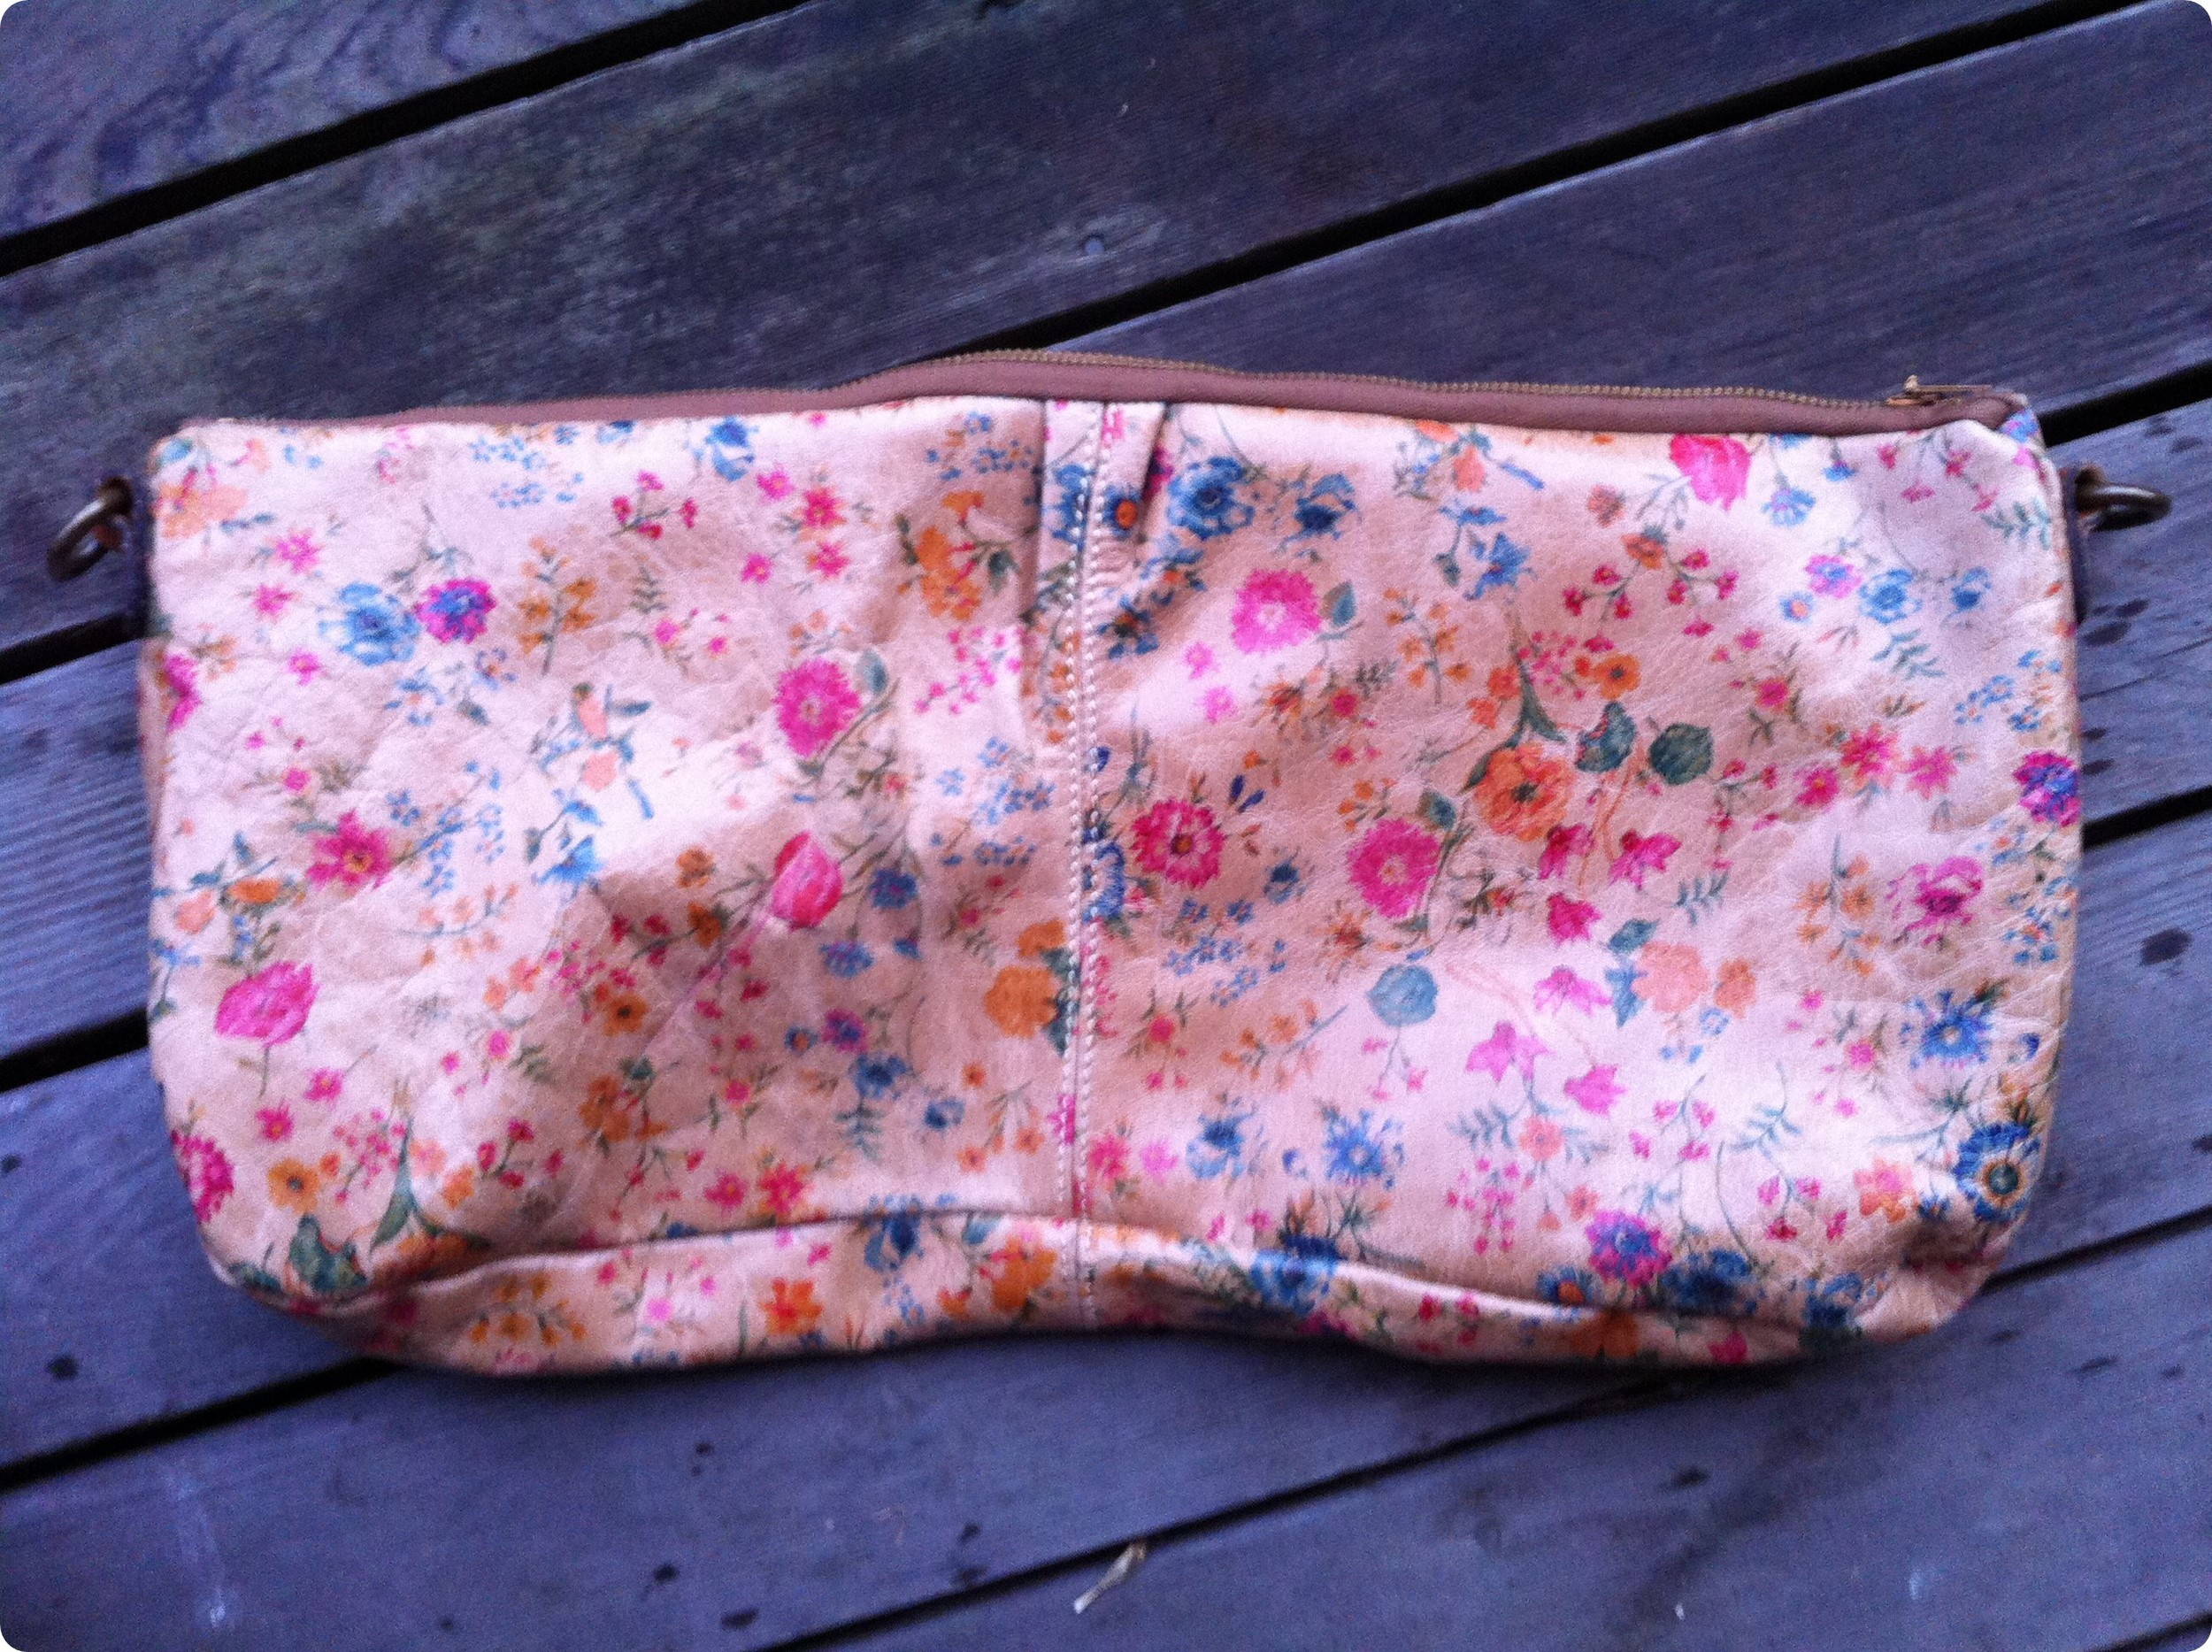 floral print leather clutch.JPG